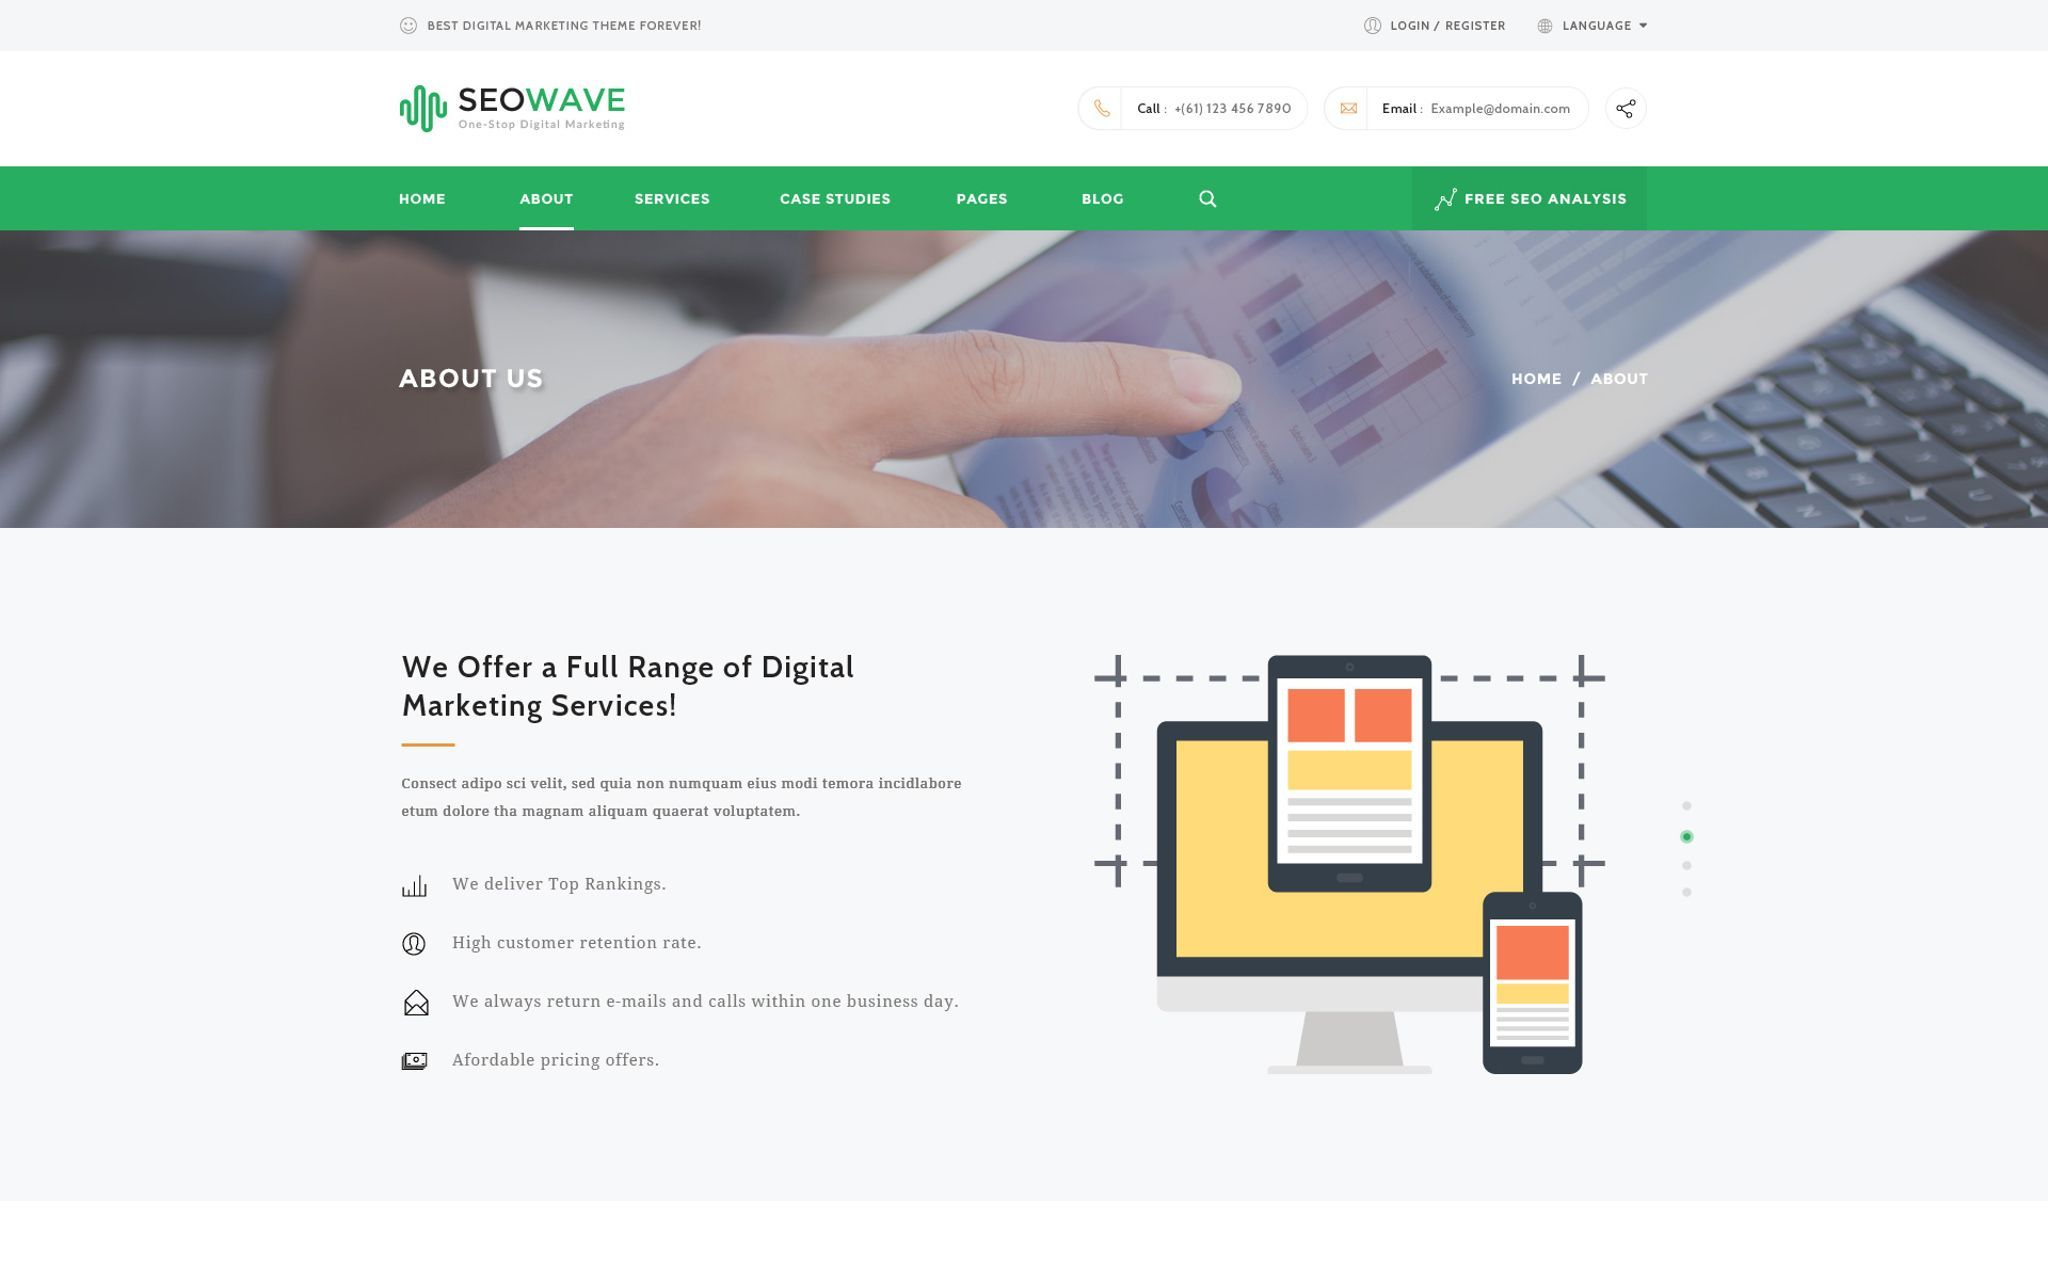 Seo Wave Seo With Images Digital Marketing Services Wordpress Theme Game Design